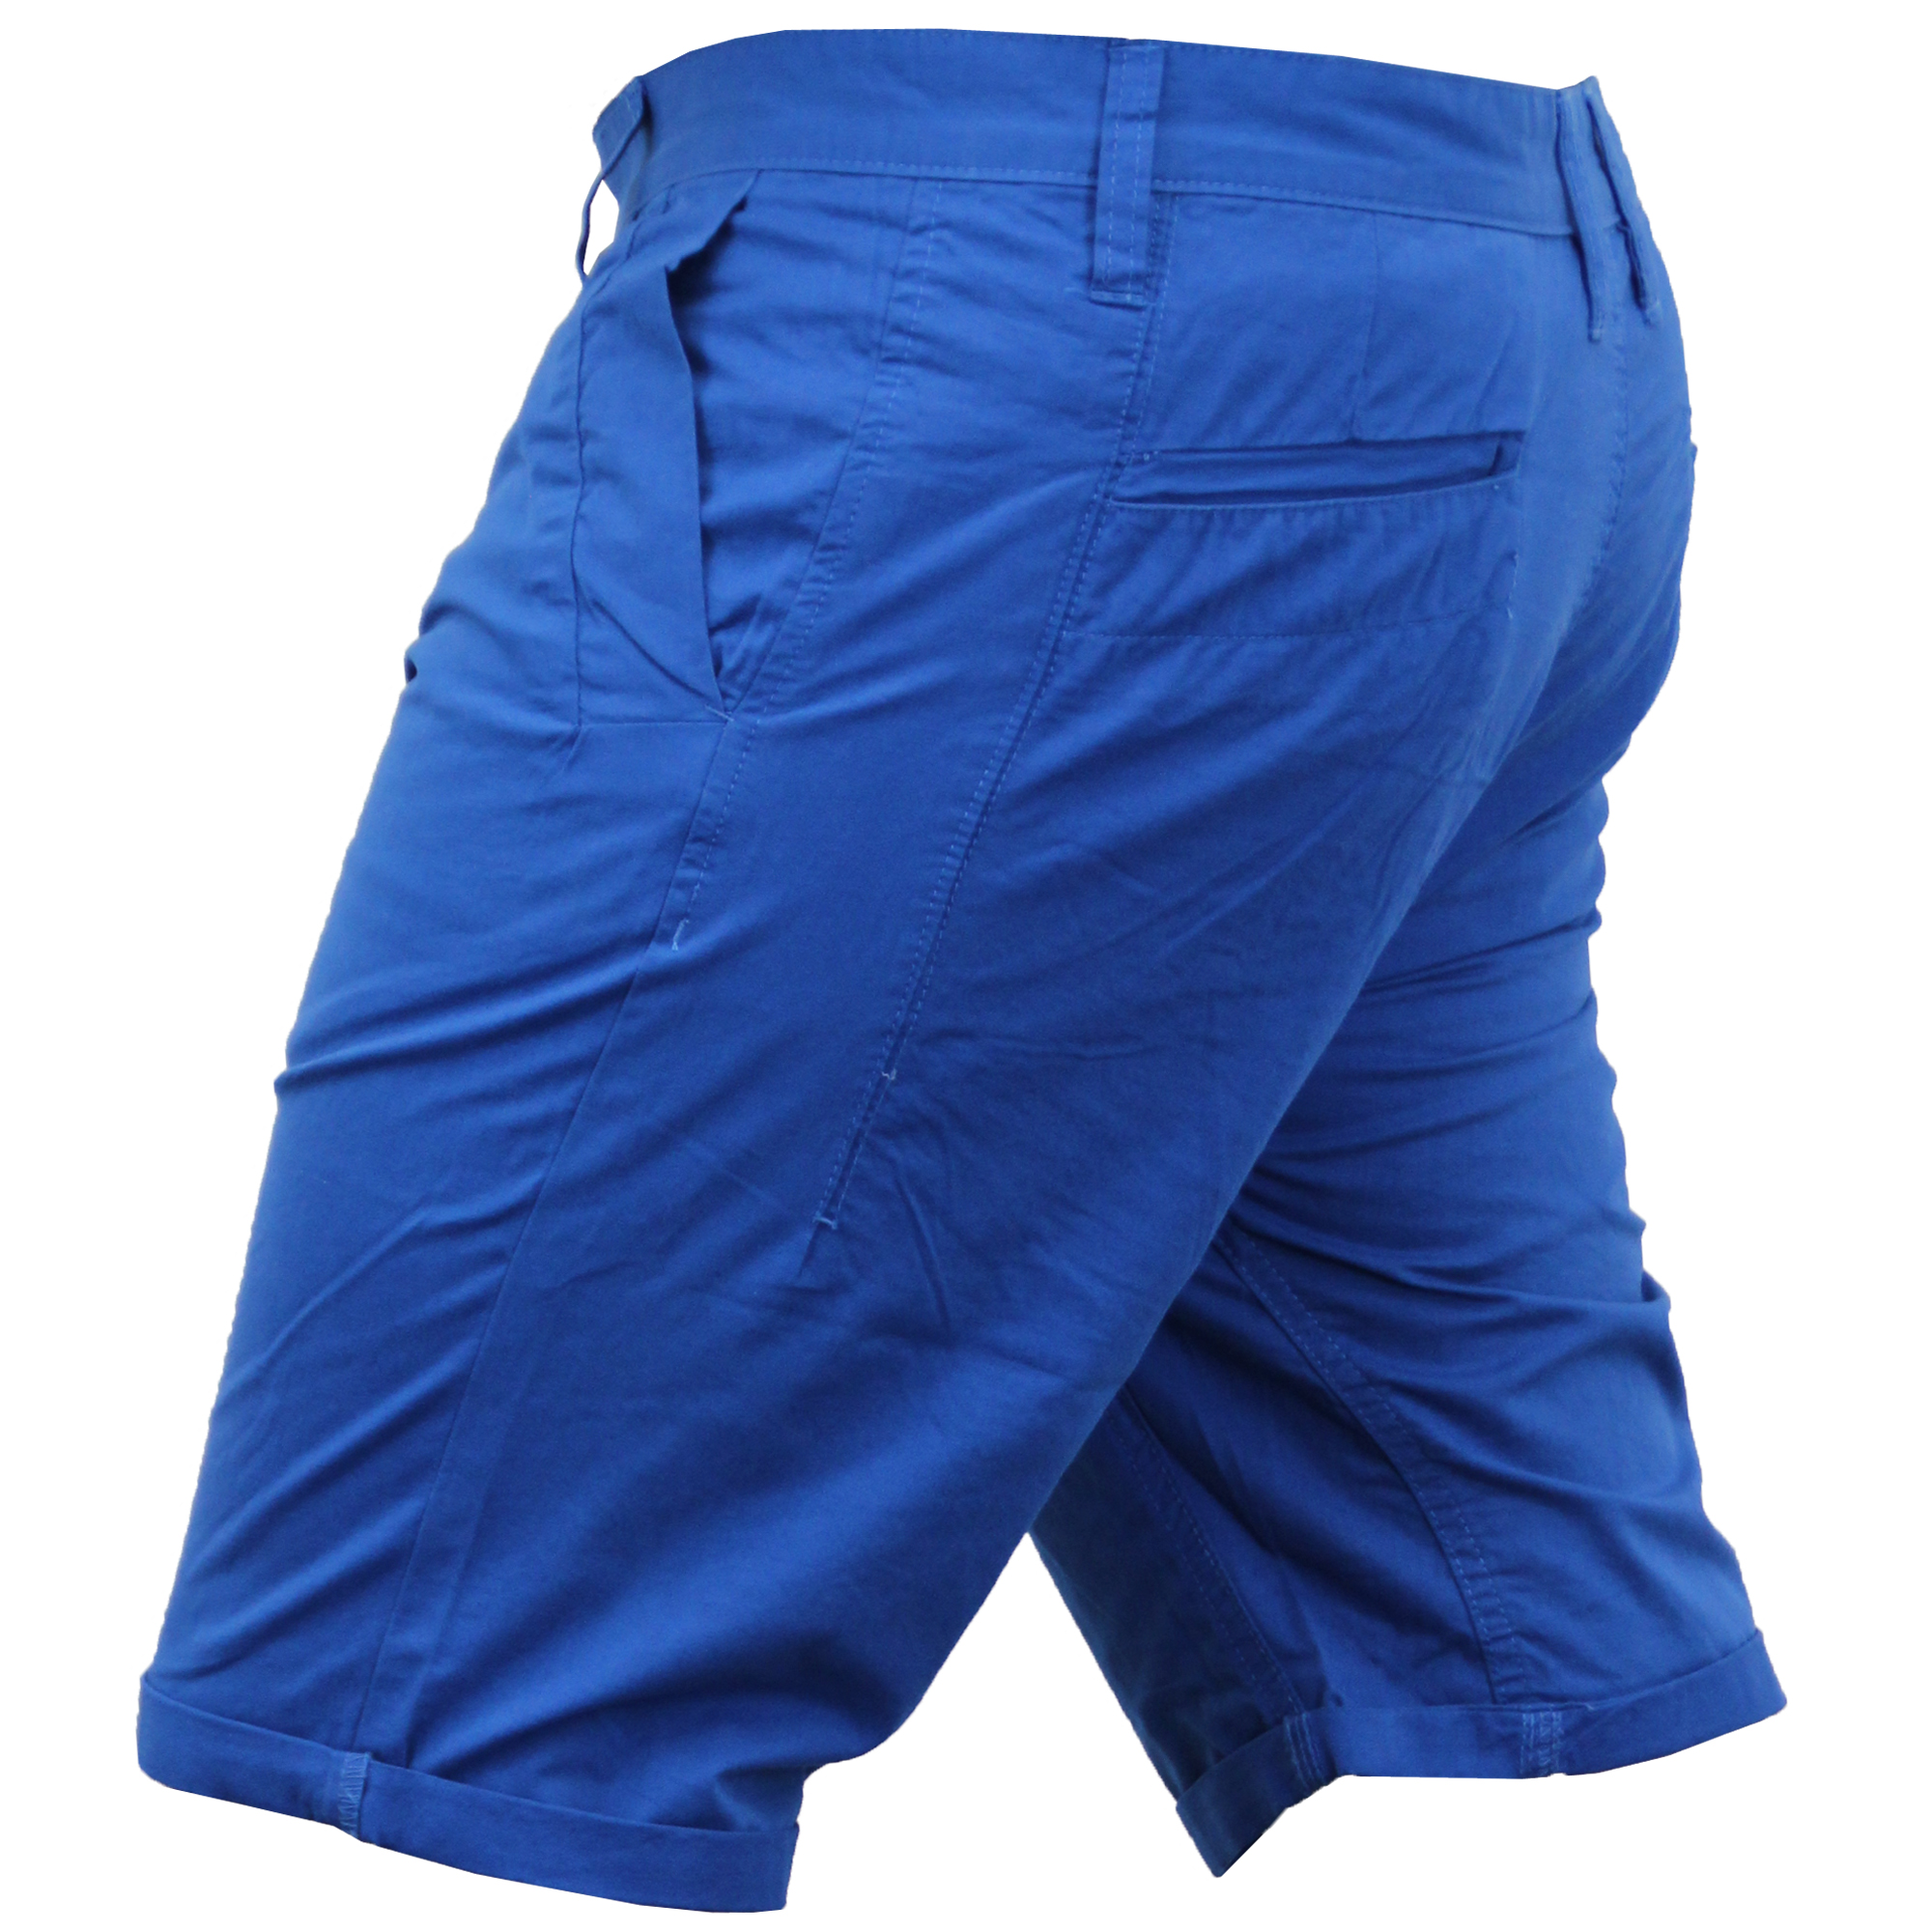 Mens-Chino-Shorts-Threadbare-Pants-Westace-Stallion-Knee-Length-Roll-Up-Summer thumbnail 44